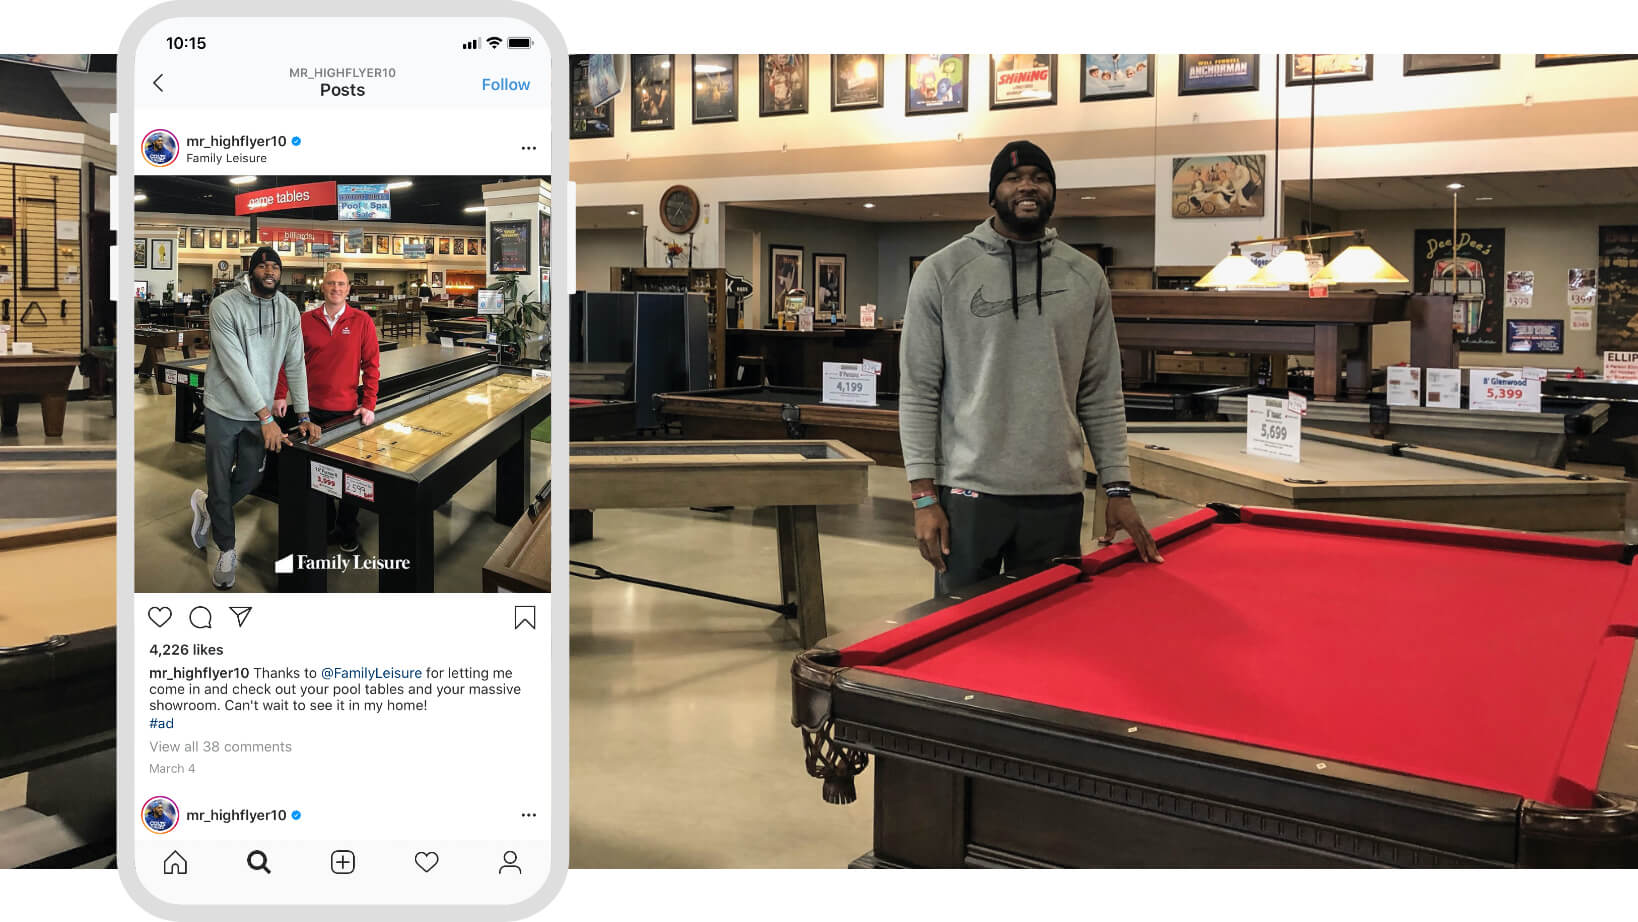 Family Leisure Social Media Engagement with Colts Players